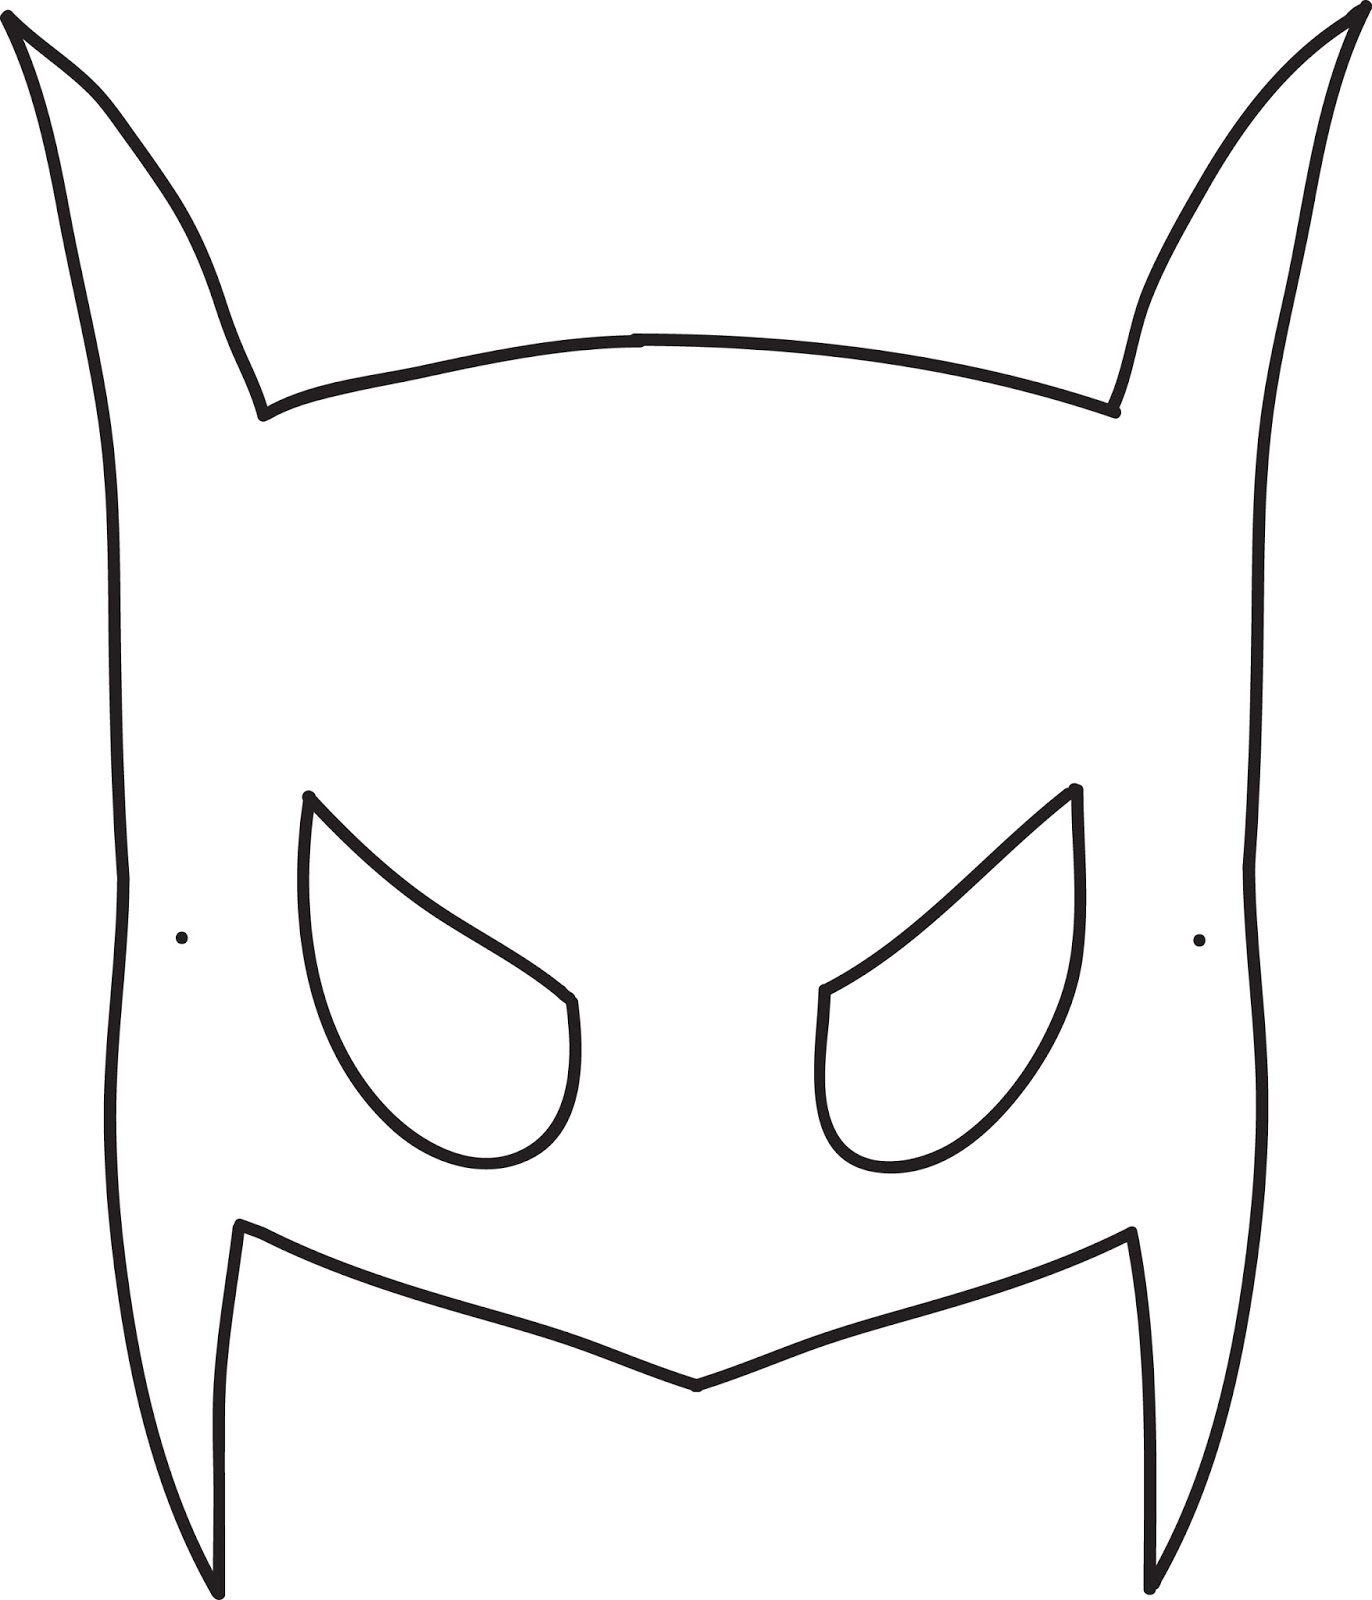 Batwoman mask template - photo#27